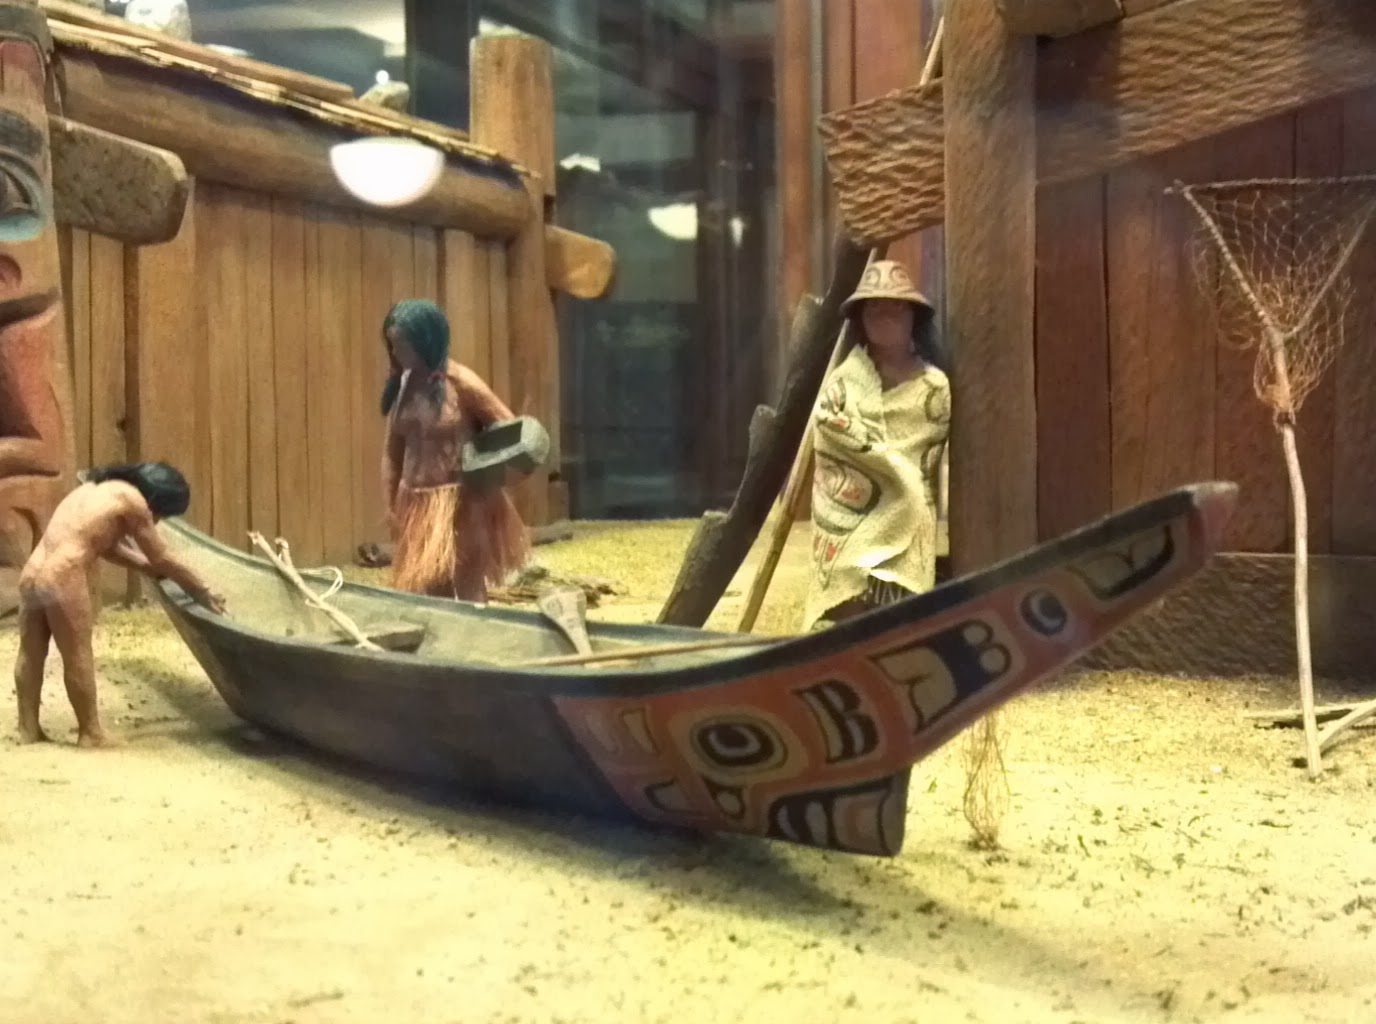 Close Up Of The Same Canoe Showing Details Painted Decoration And Bow Skeg At Extreme Right A Dip Net Different Pattern Rests Against